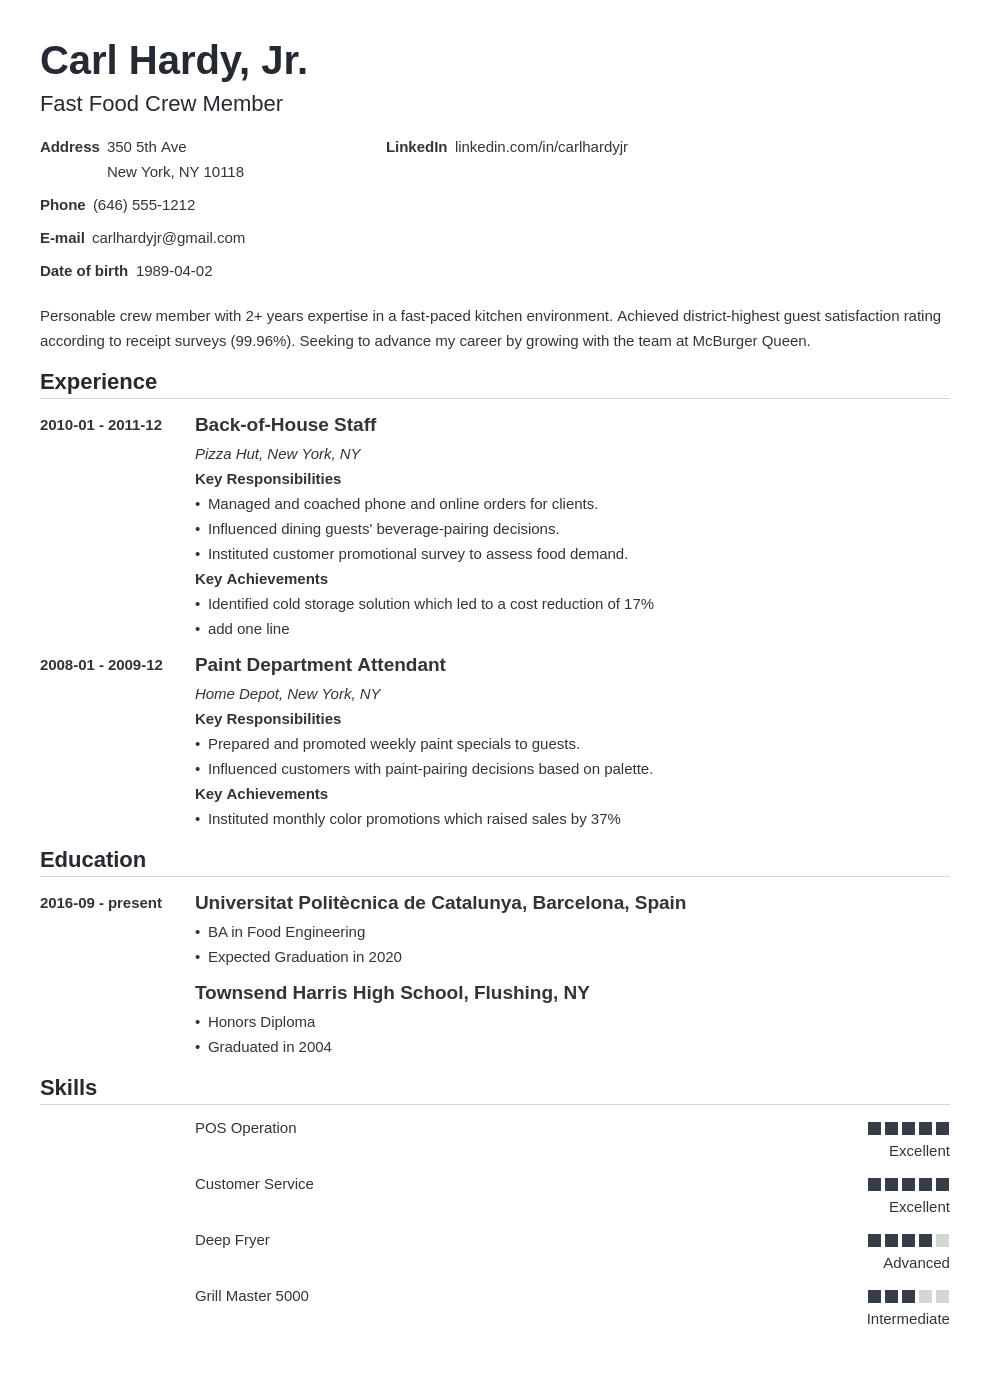 Fast Food Resume Sample Writing Guide 10 Tips